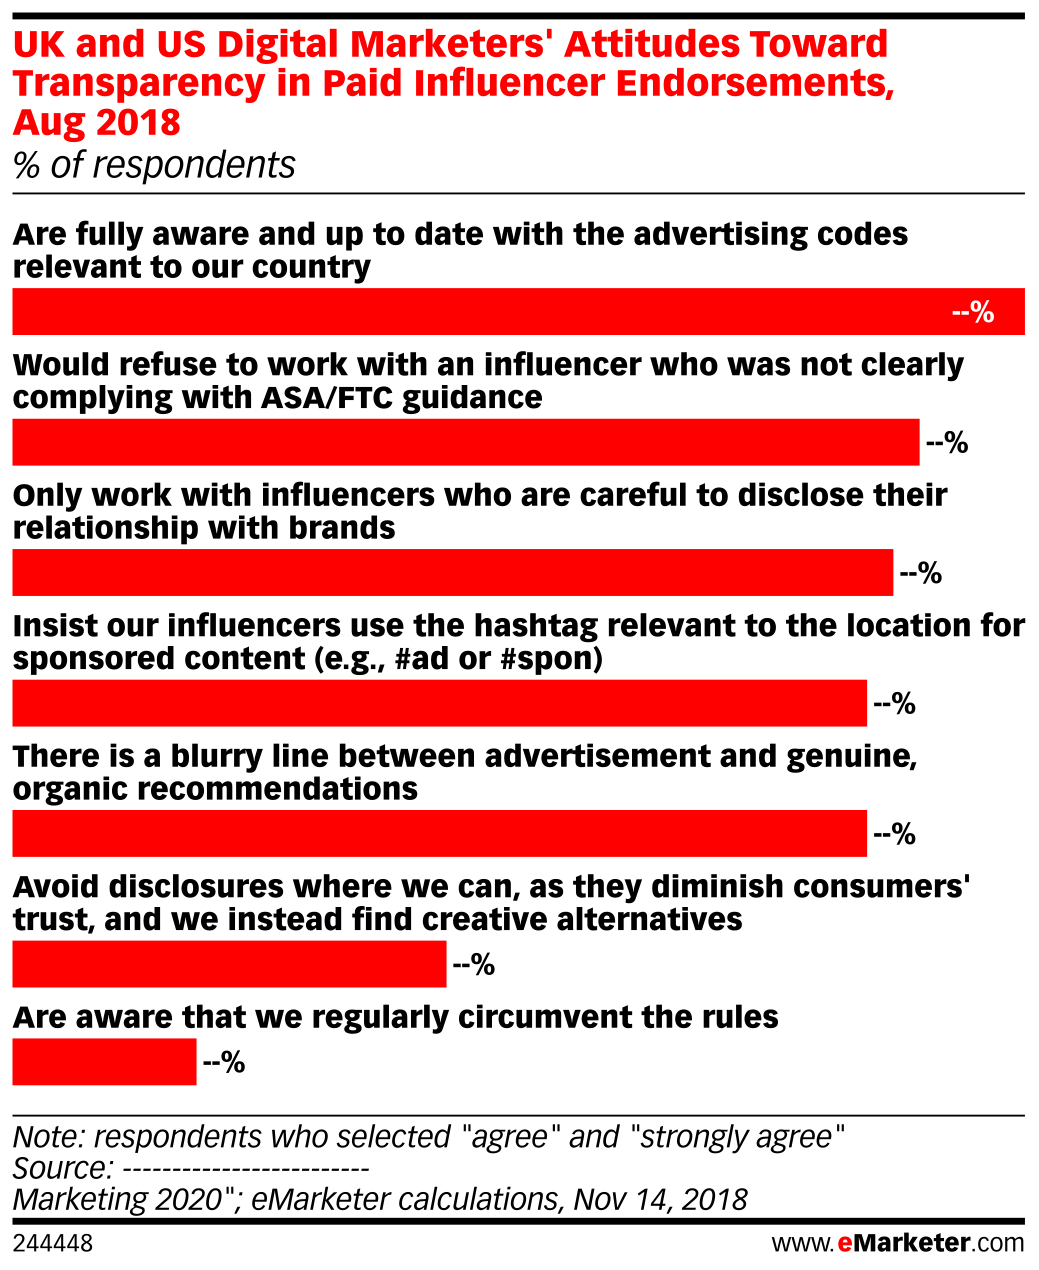 UK and US Digital Marketers' Attitudes Toward Transparency in Paid Influencer Endorsements, Aug 2018 (% of respondents)